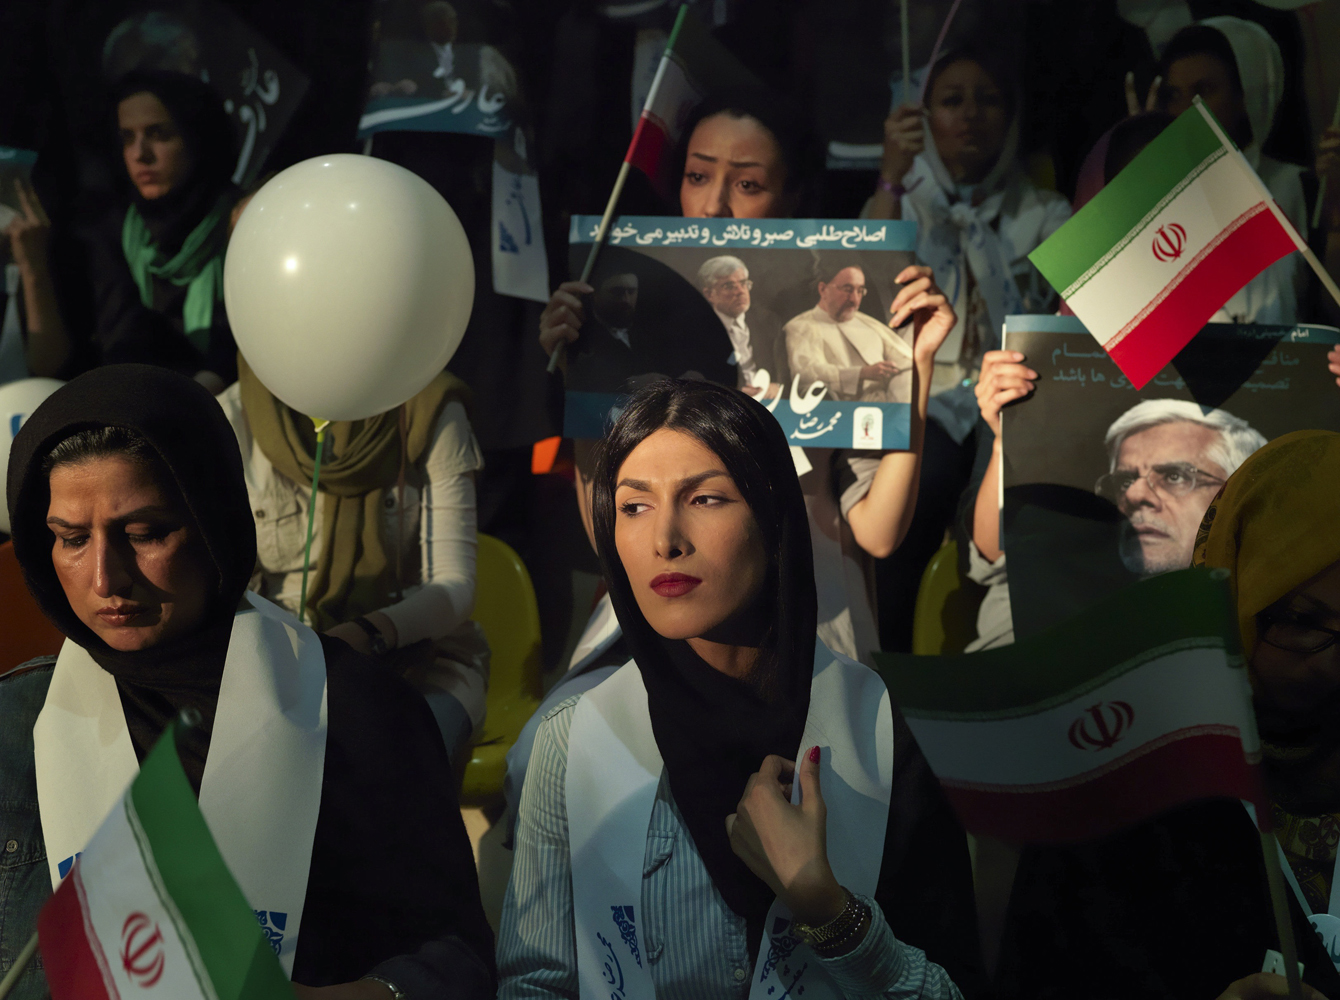 June 10, 2013. Yasaman Karimi, 23, a young supporter of Dr. Aref who is one of two reformists out of the eight candidates in the Iranian election, gathers near Hejab stadium in the center of Tehran.